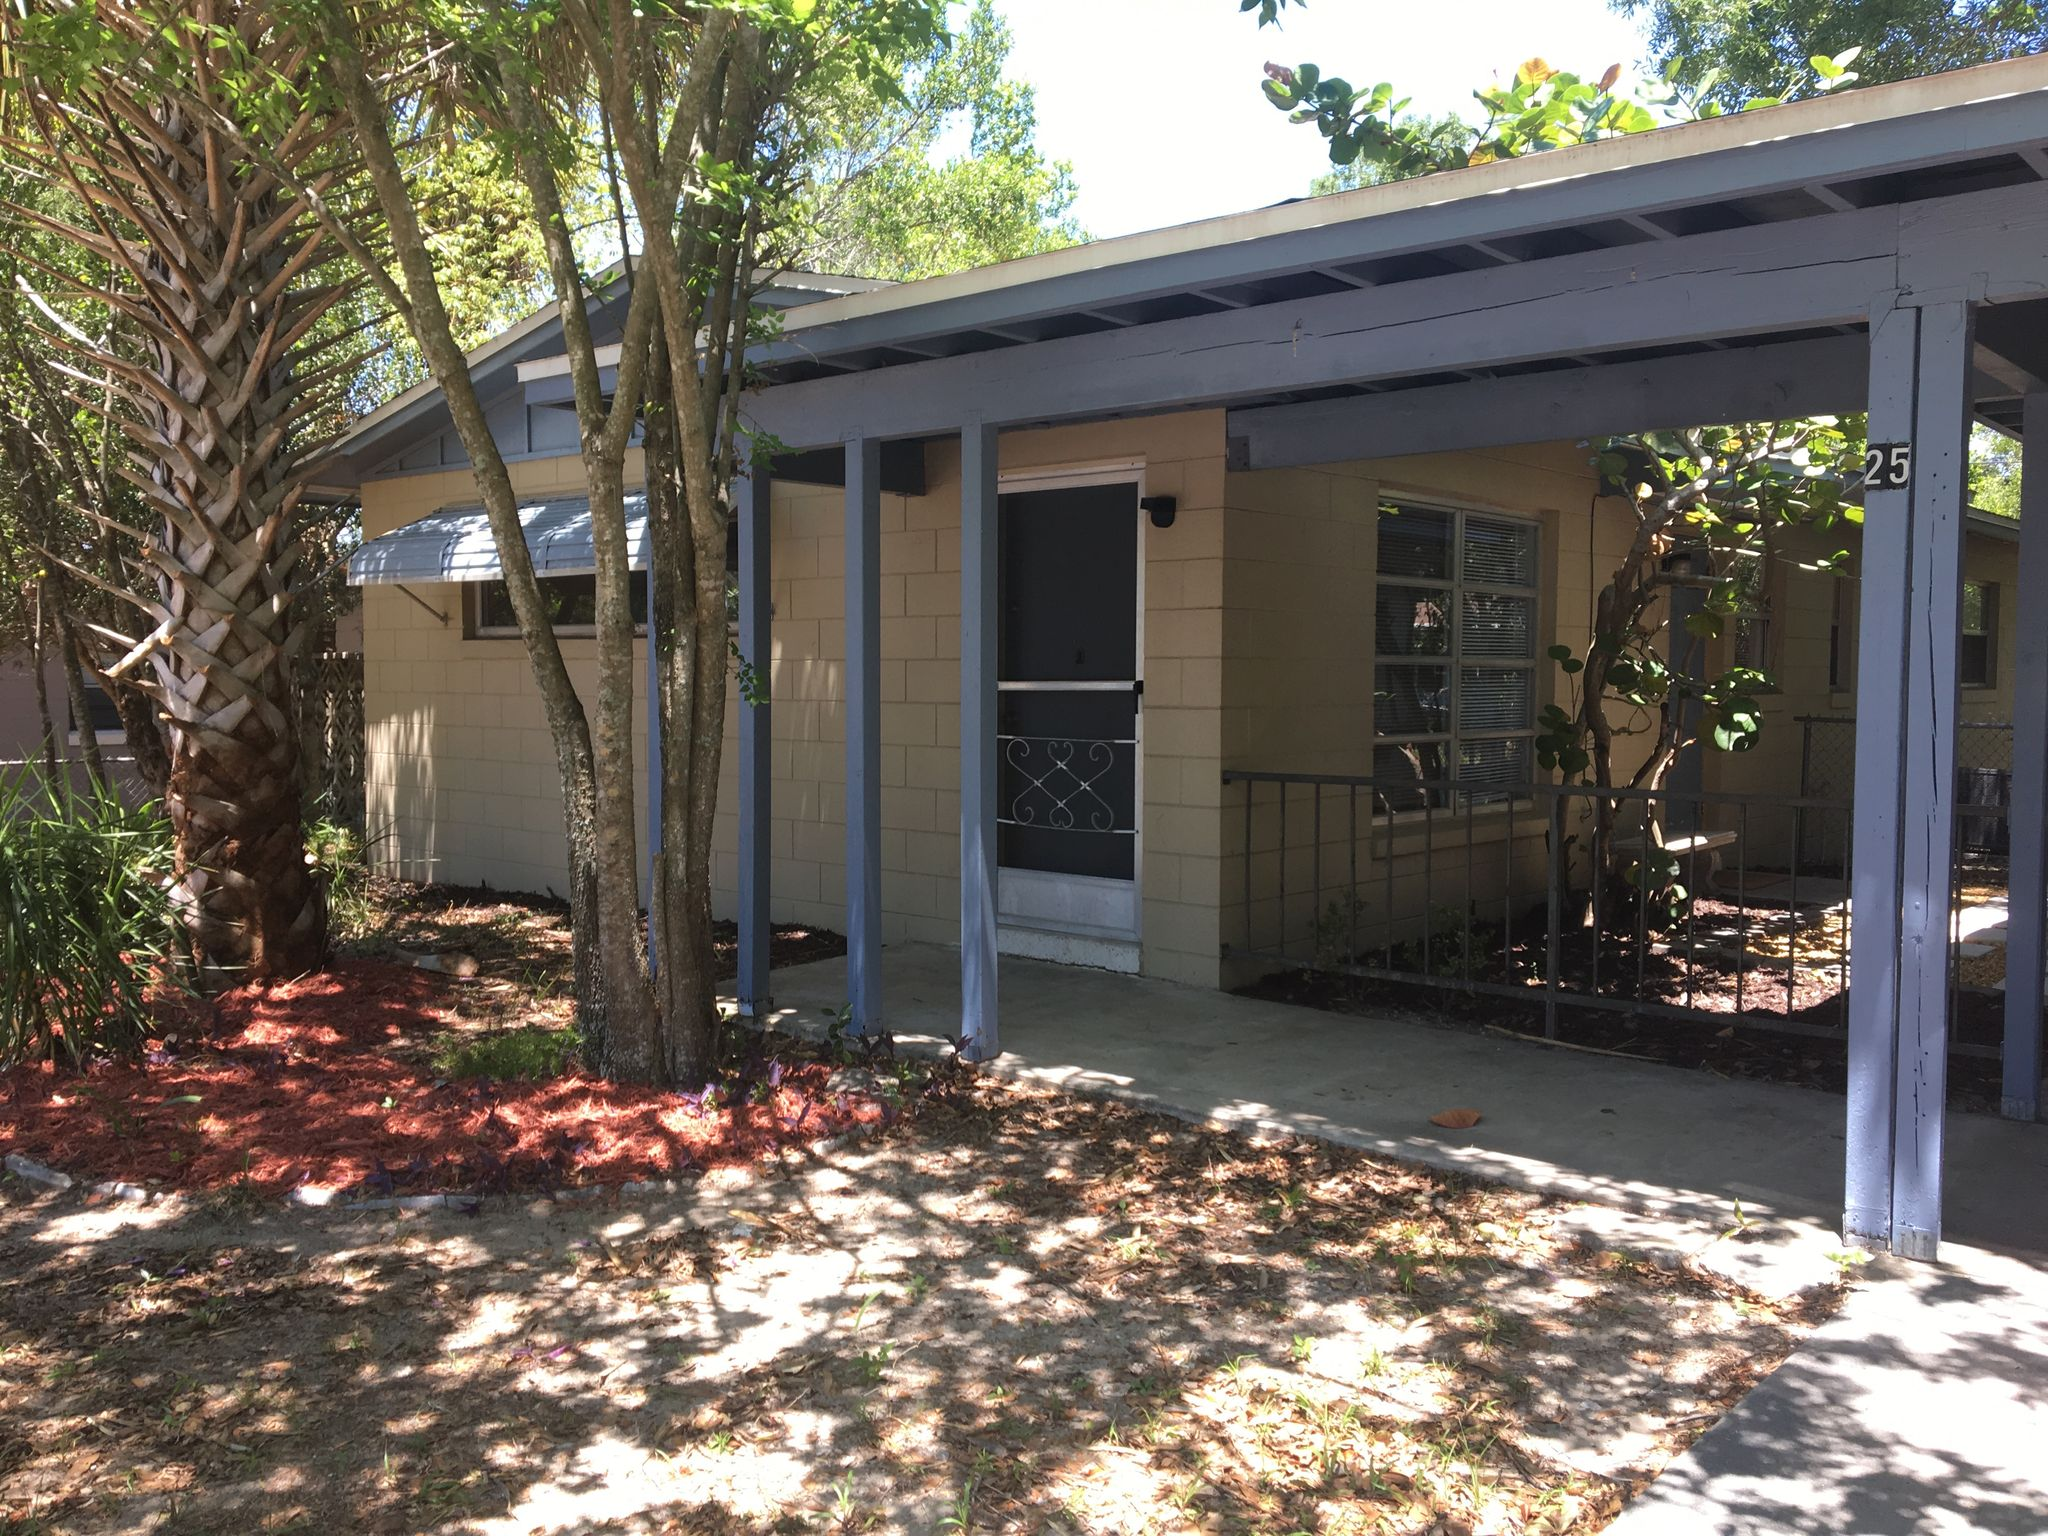 25 bombay ave winter springs fl 32708 recently sold trulia